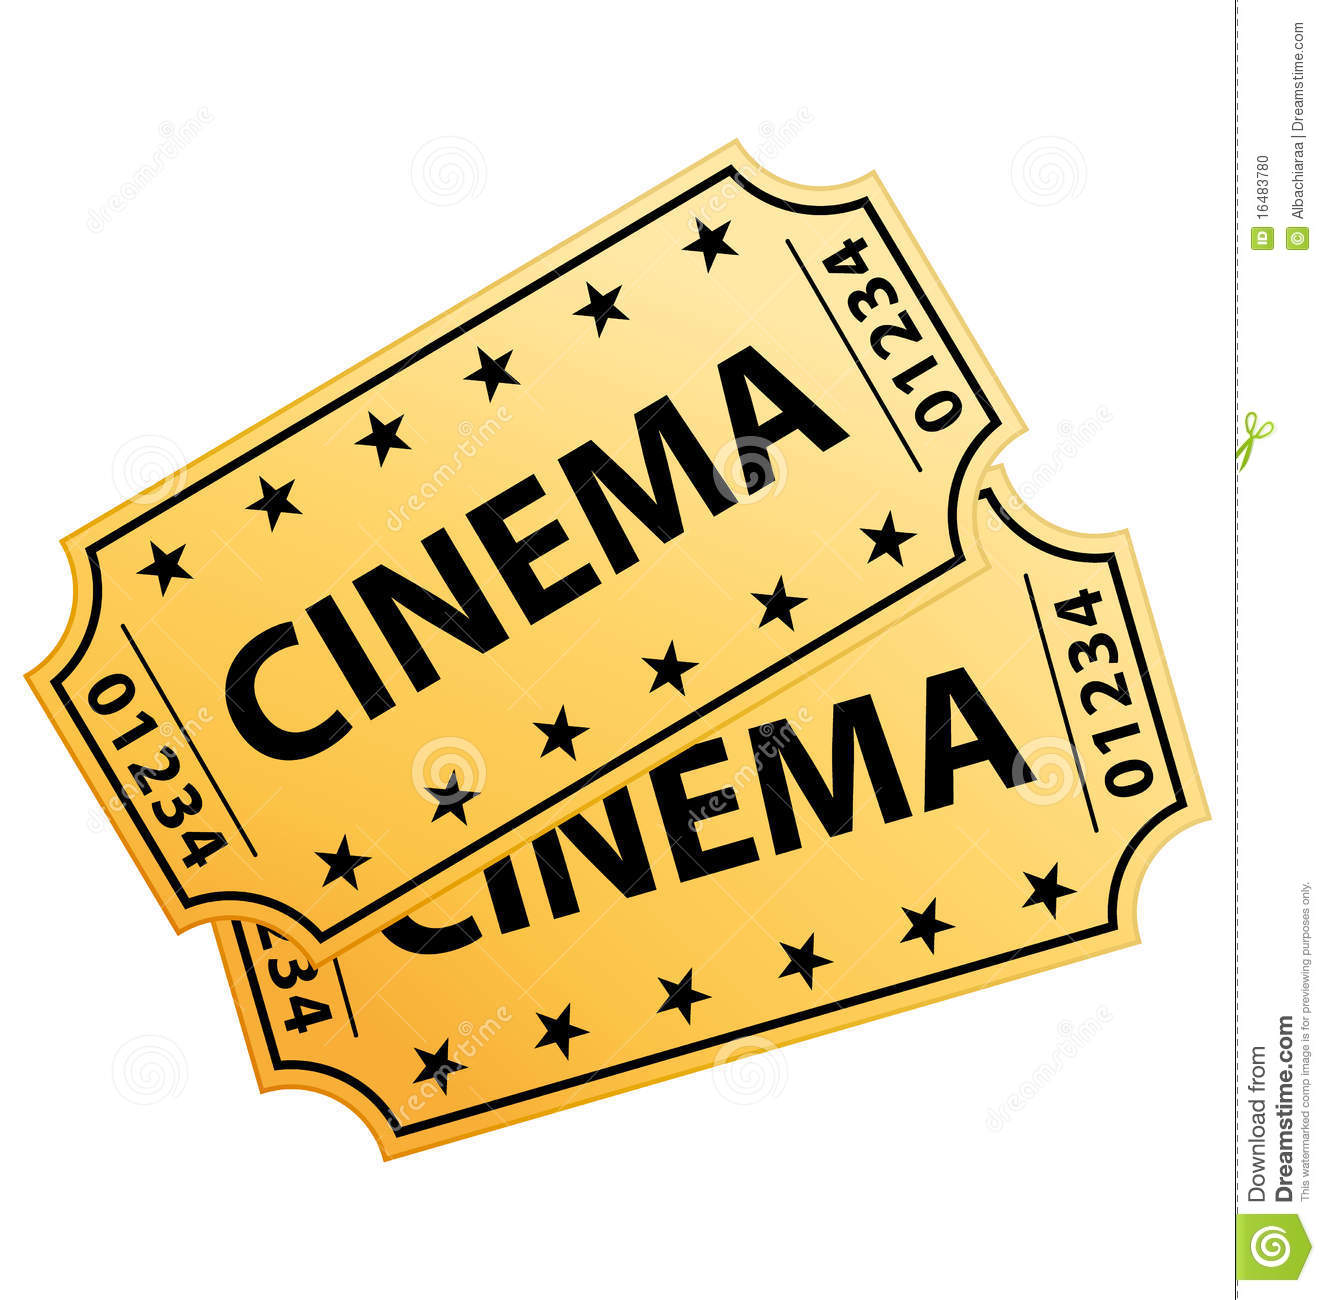 Cinema ticket clipart 8 » Clipart Station.